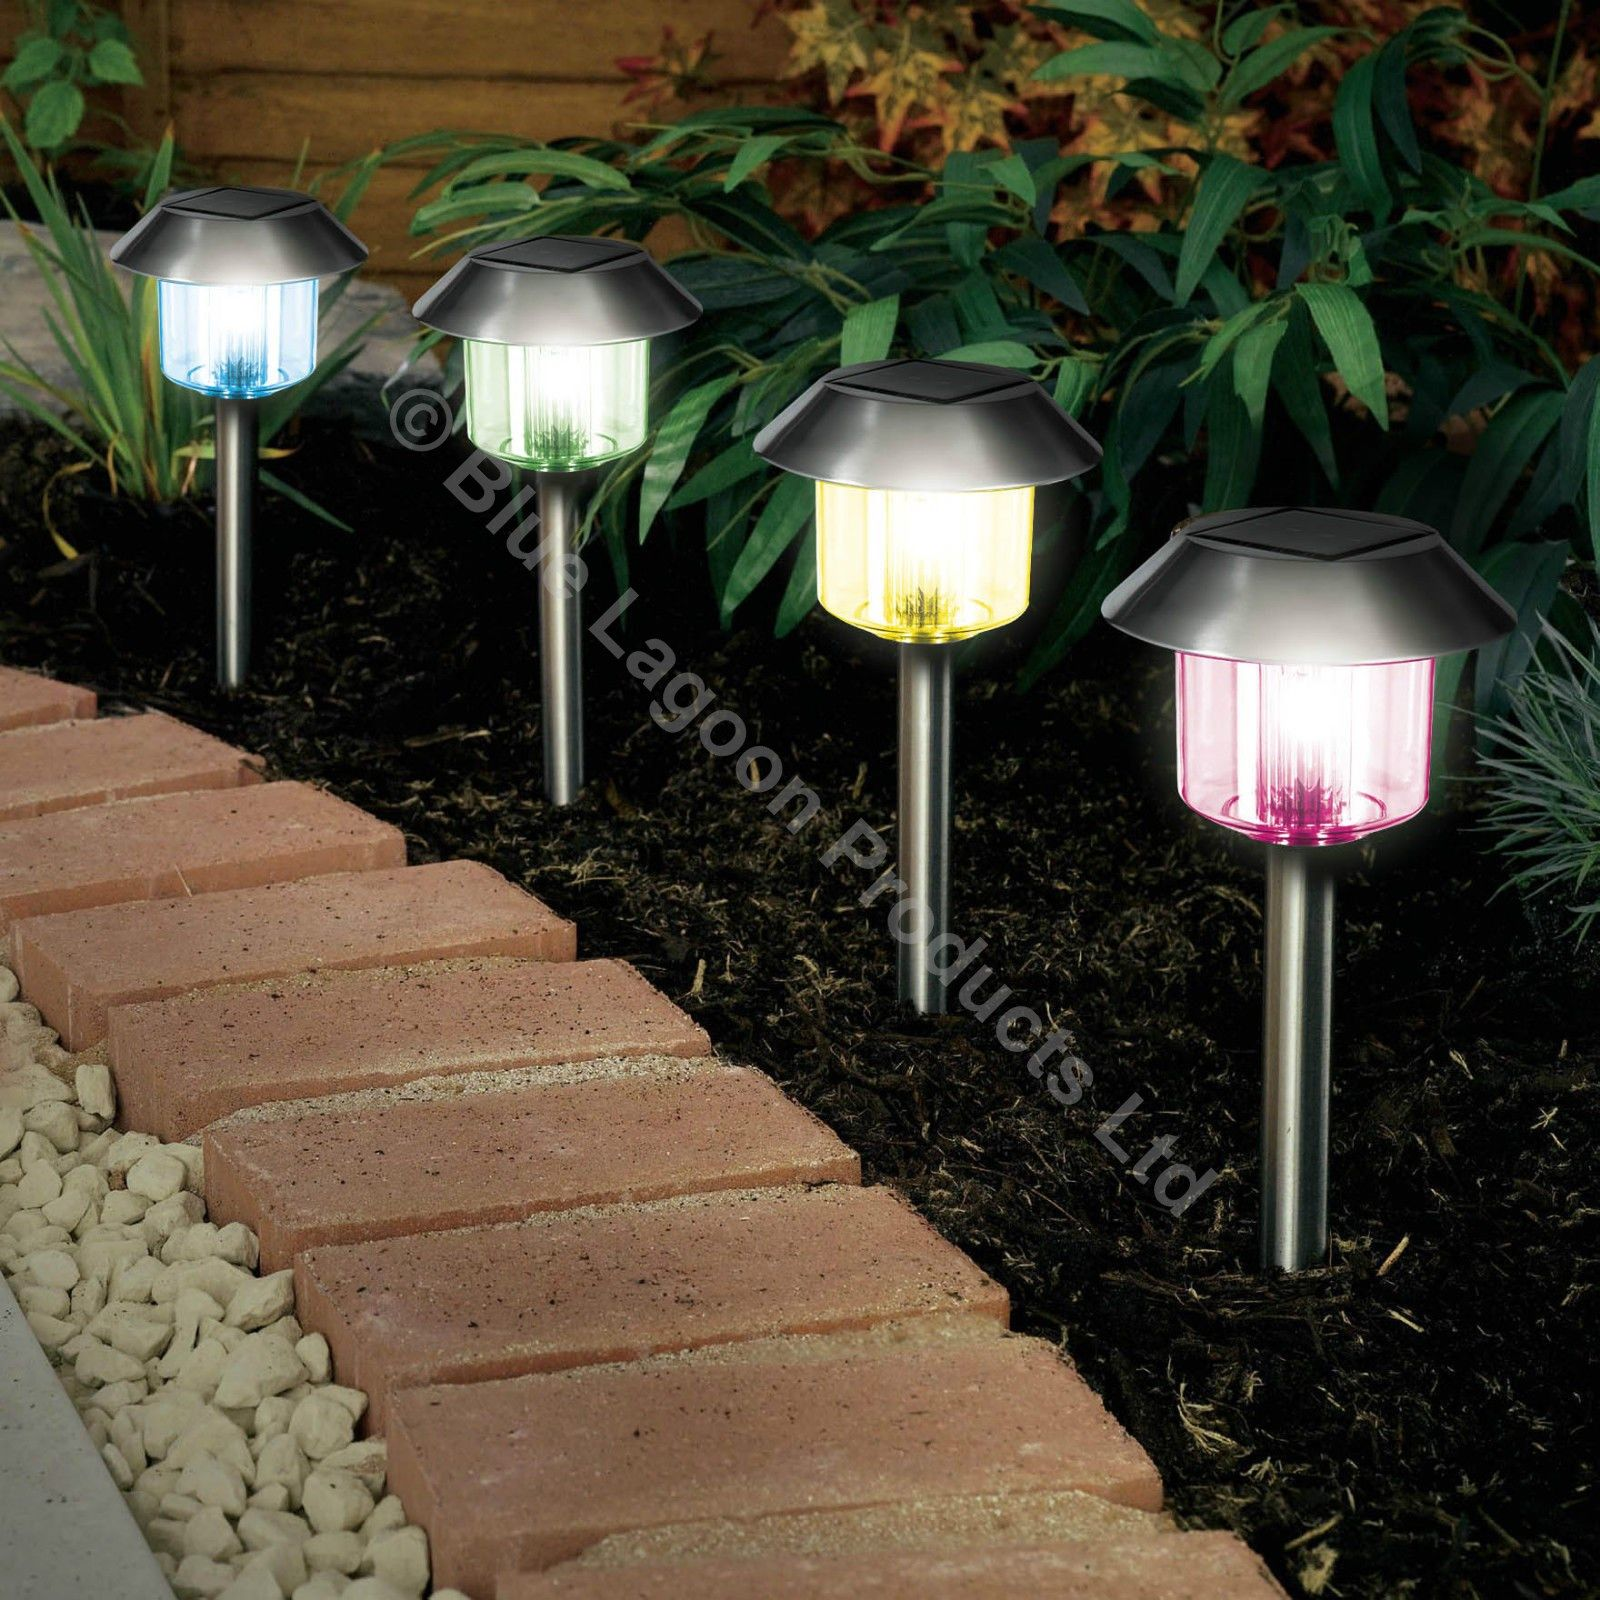 12 X Colour Changing Solar Power Light Led Post Outdoor Lighting Powered Garden In 2020 Solar Powered Garden Lights Solar Lights Garden Outdoor Solar Lights